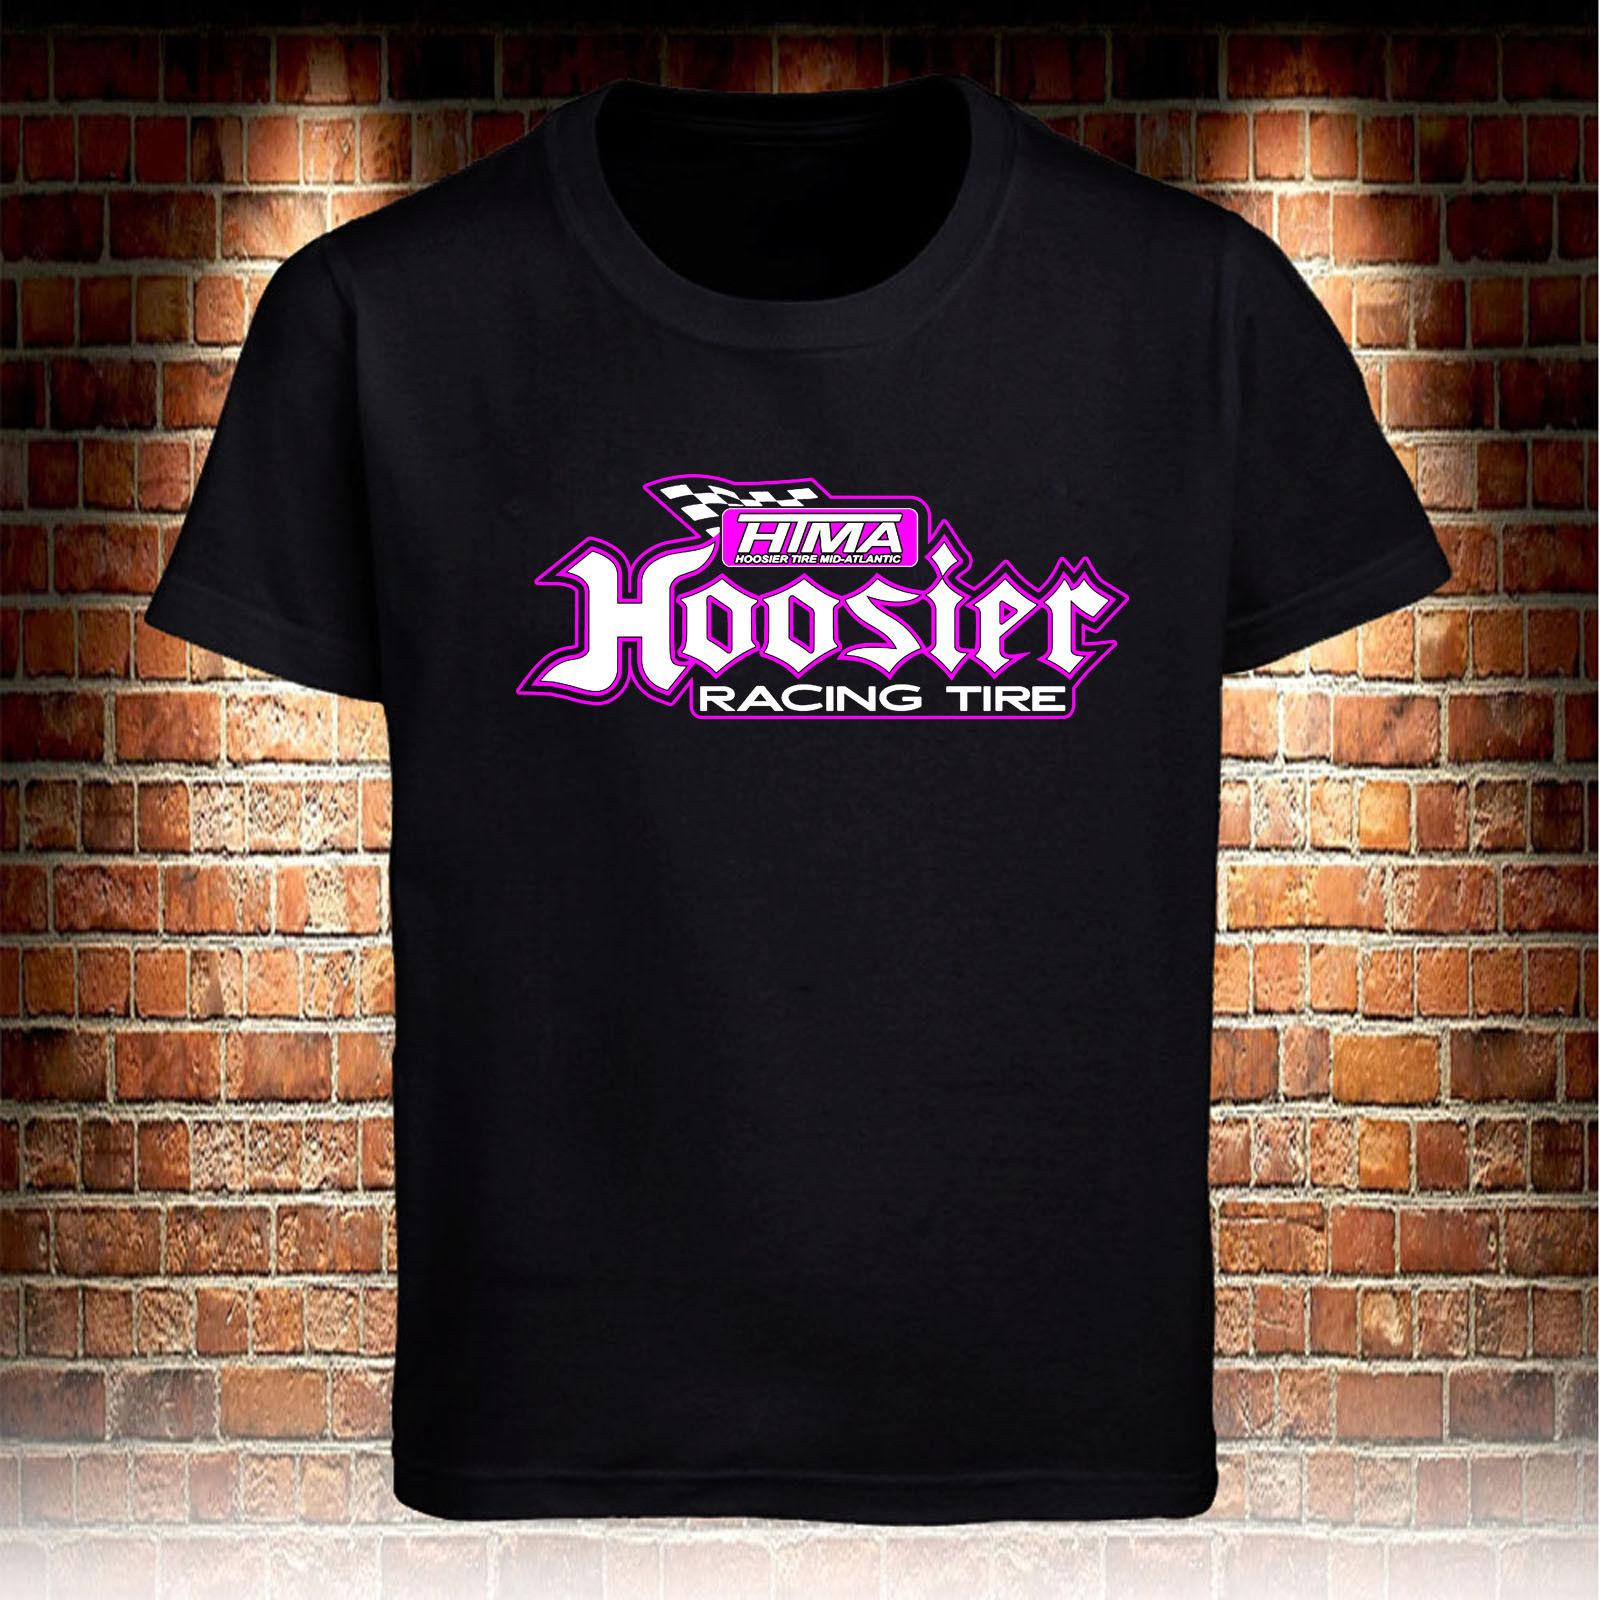 946d1fc244b Black T Shirt Hoosier Racing Tire Logo Men S Size S To 3XL Funny Unisex Tee  T Shirts Vintage T Shirts Sale From Stshirt